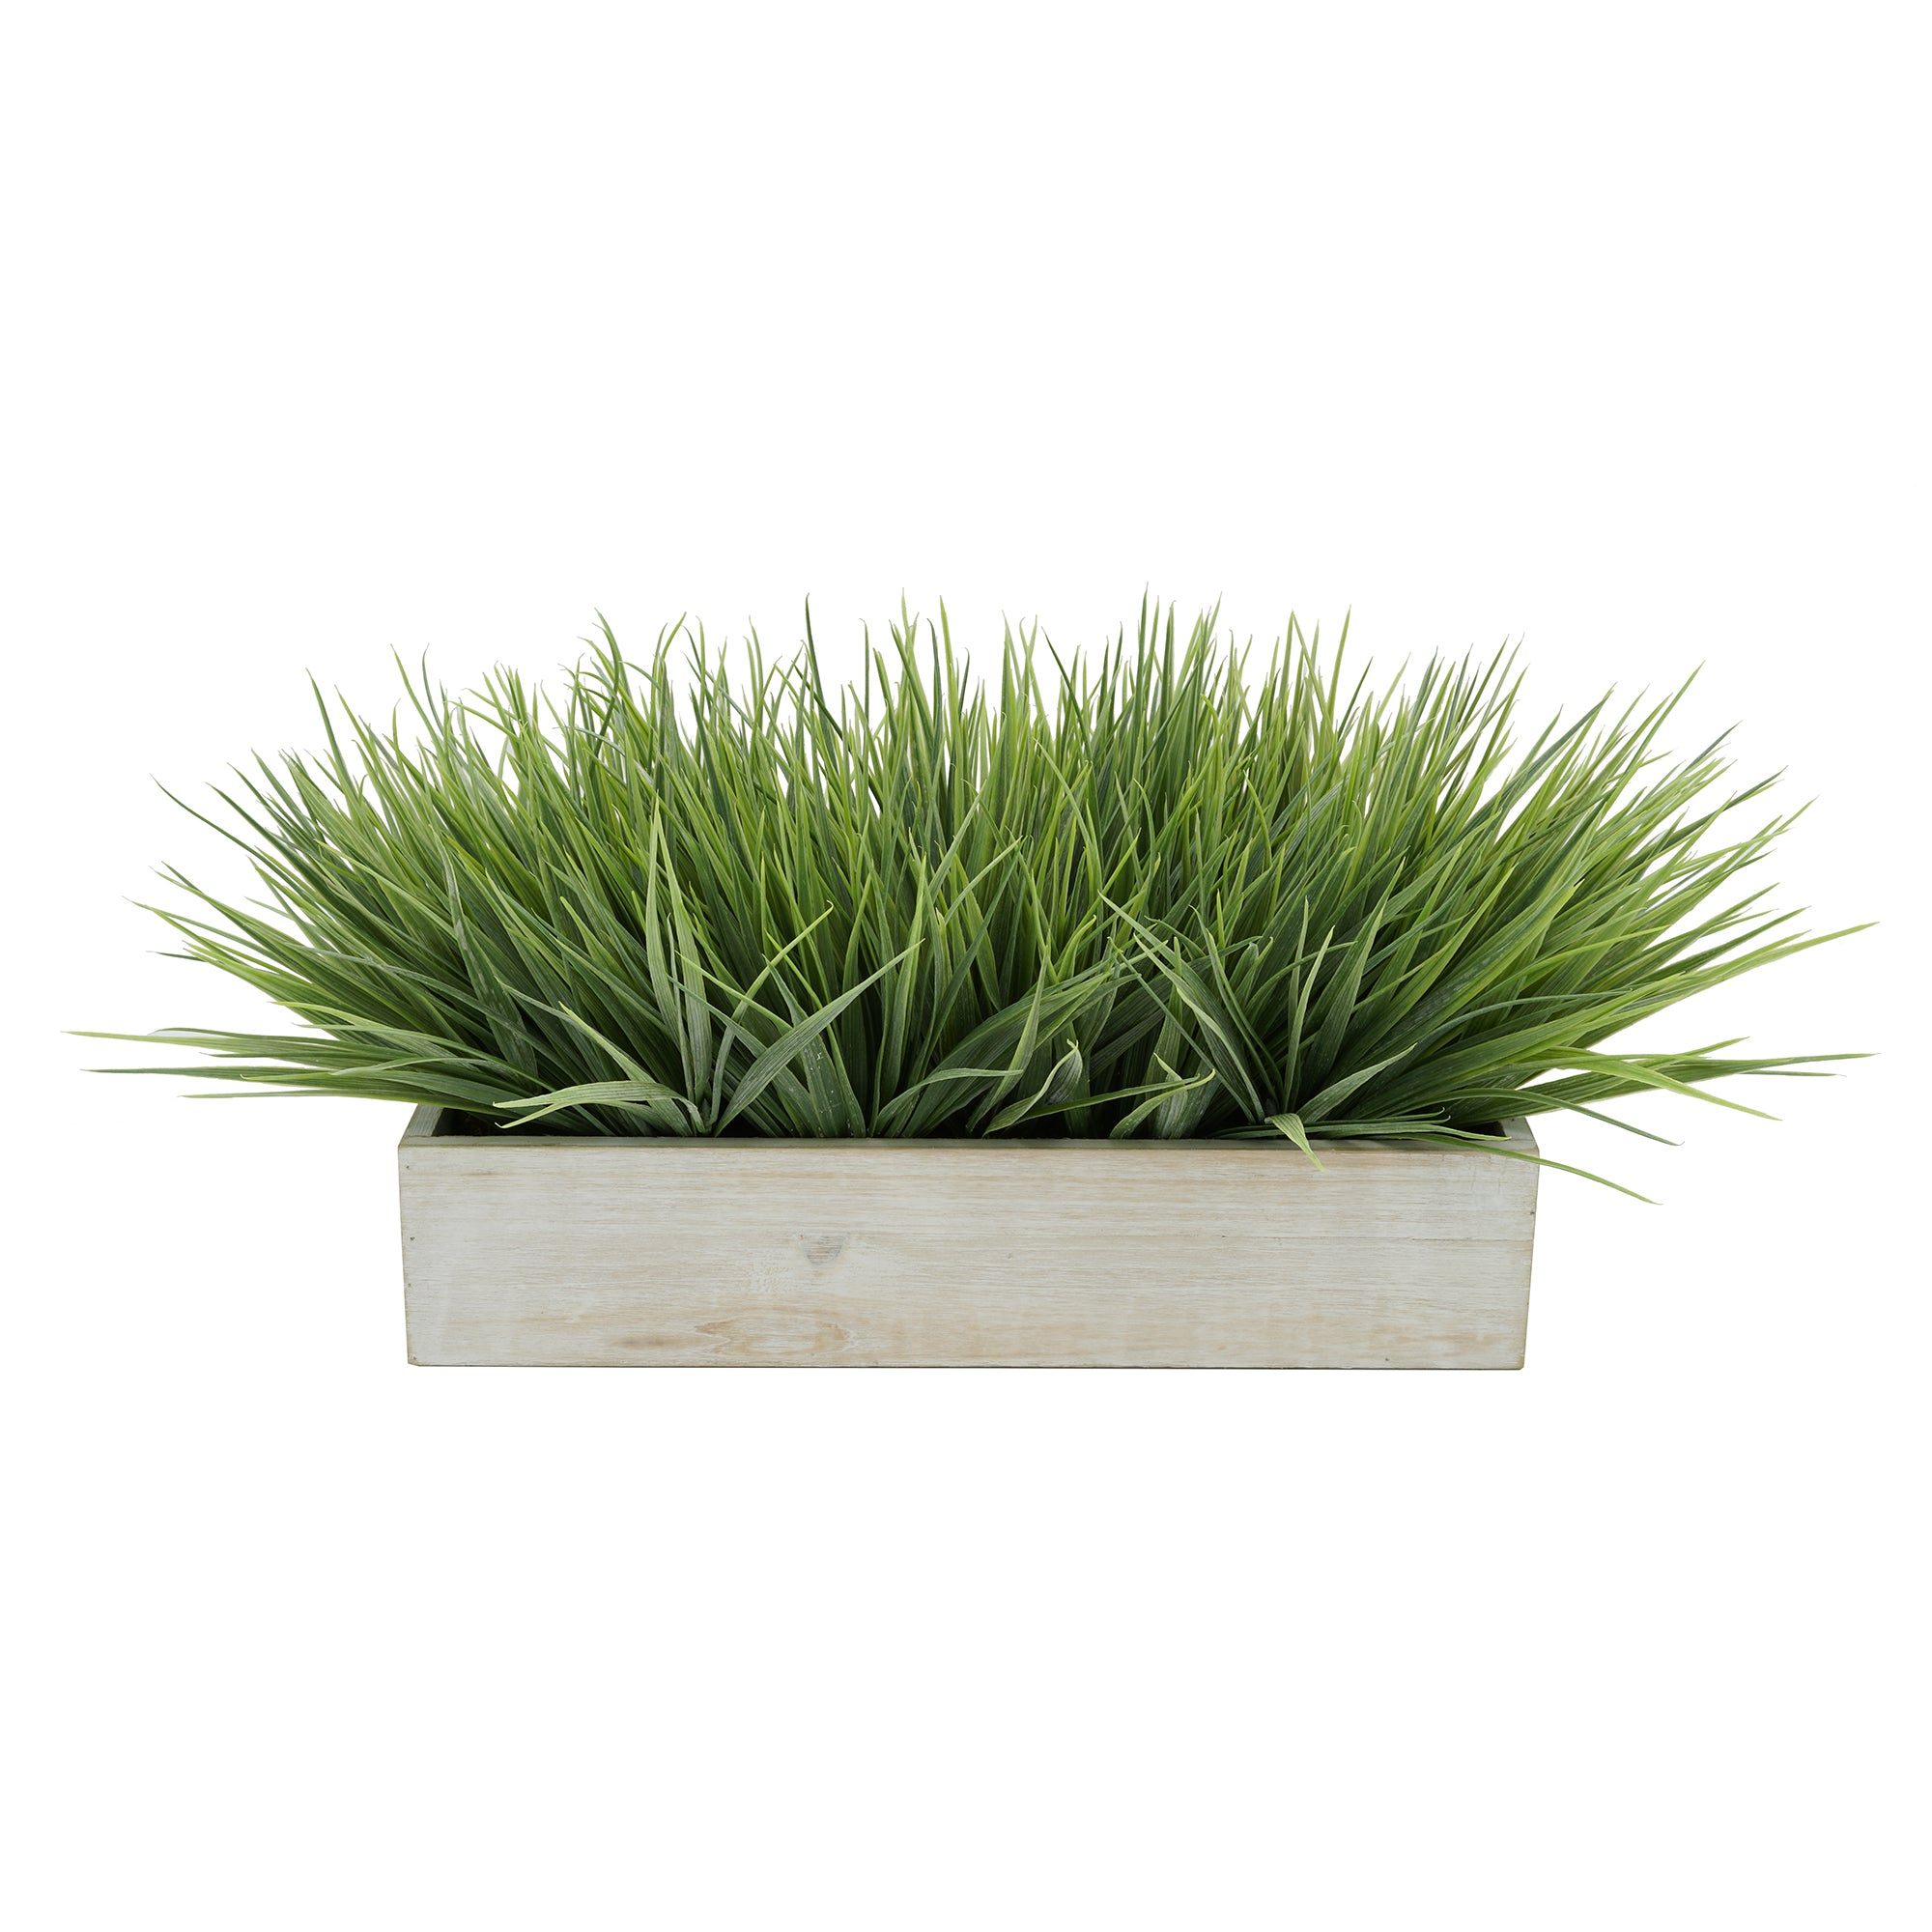 "Artificial Frosted Farm Grass in 15"" Washed Wood Trough"